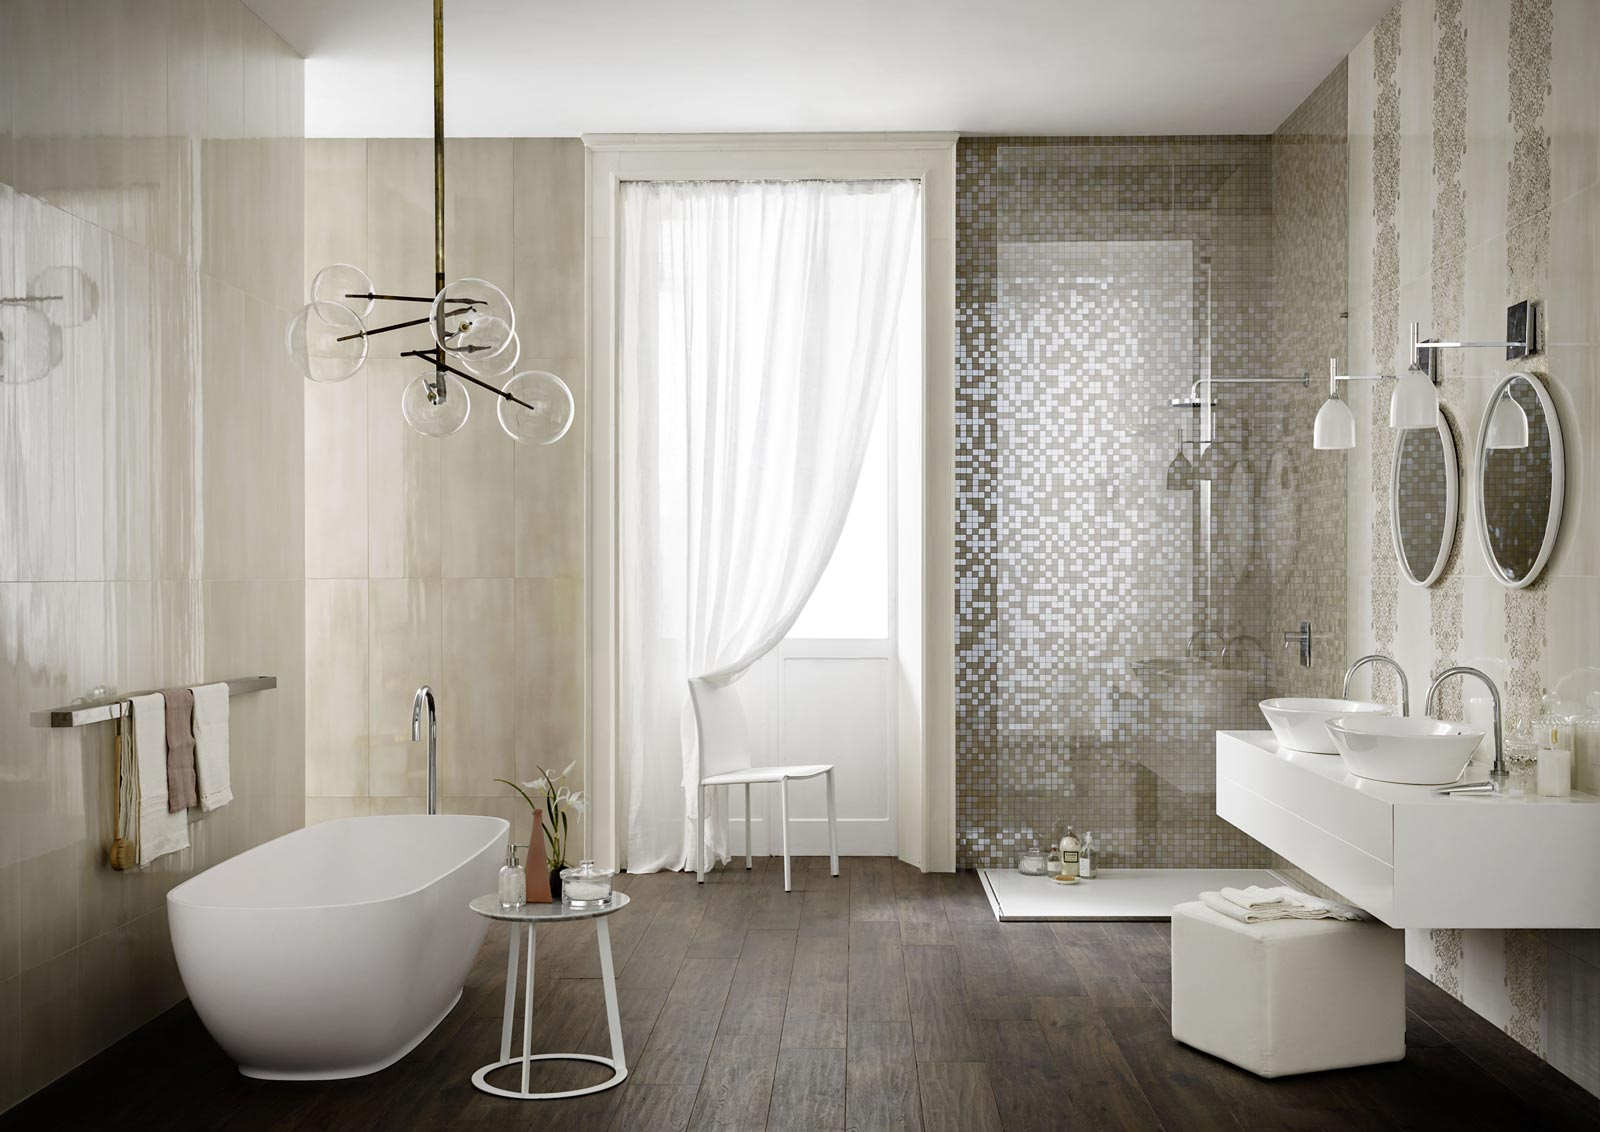 Imperfetto piastrelle bagno colorate marazzi - Bad fliesen weiay ...